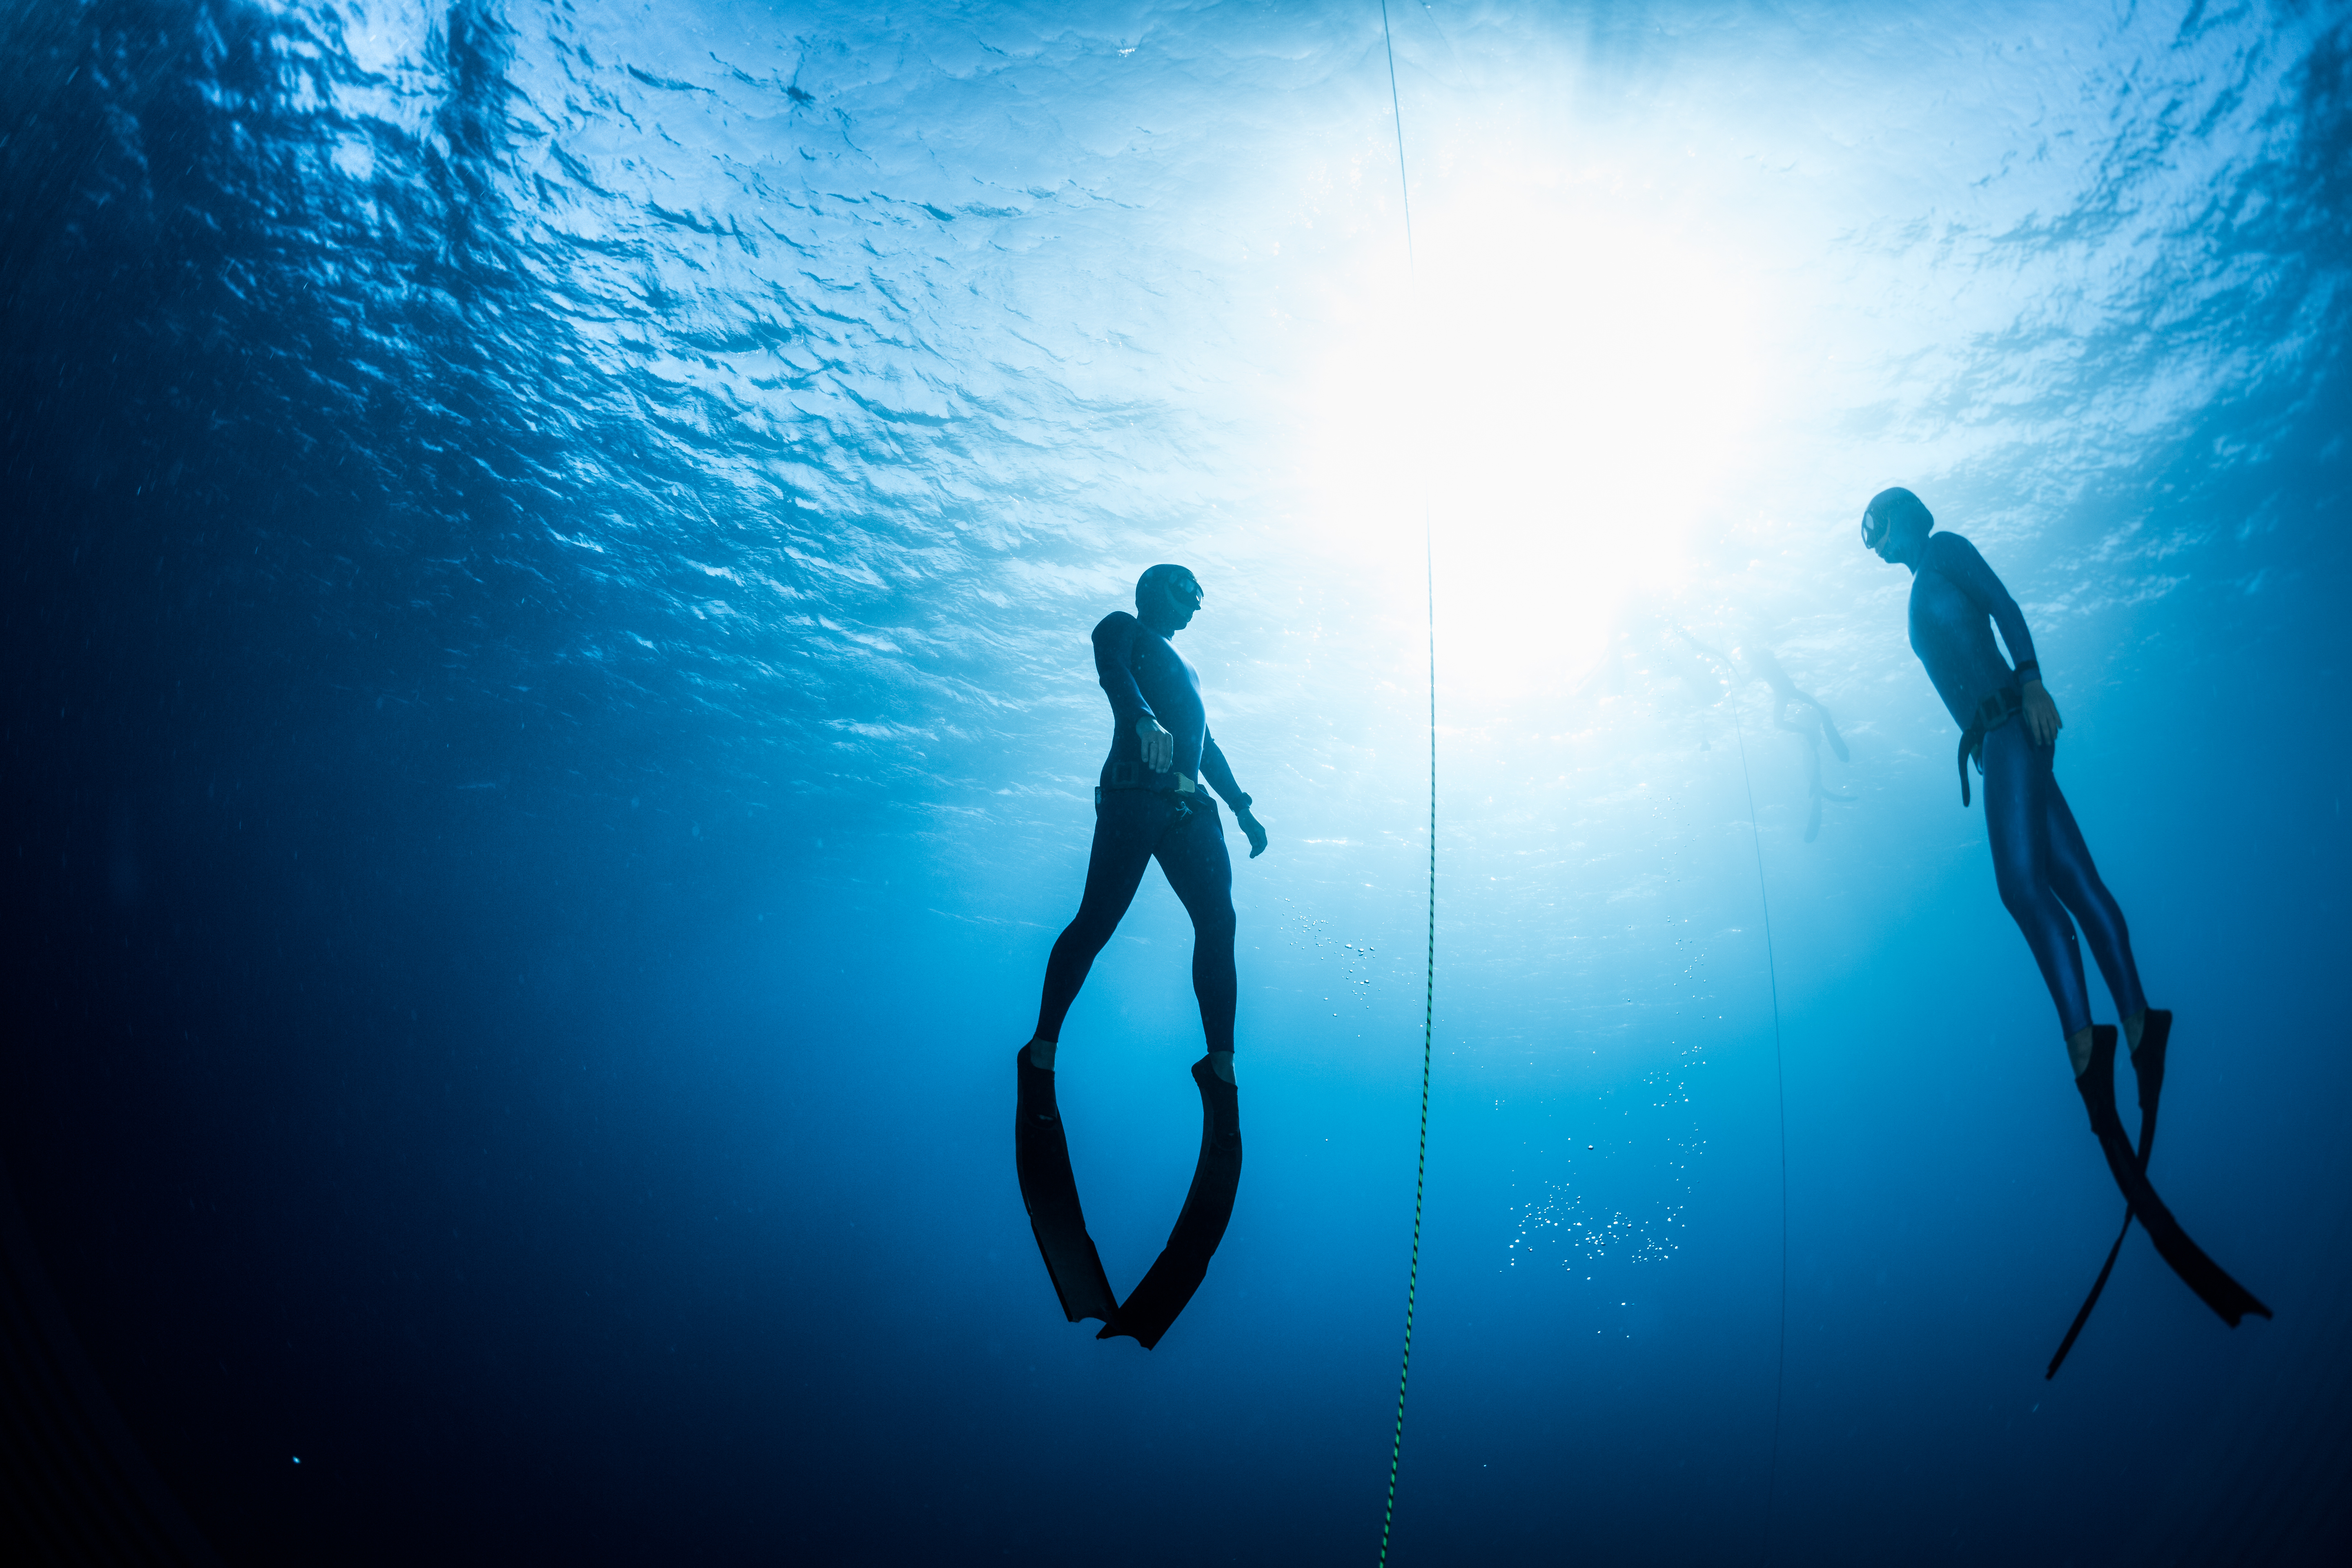 Two free divers, man and woman, ascending from the depth